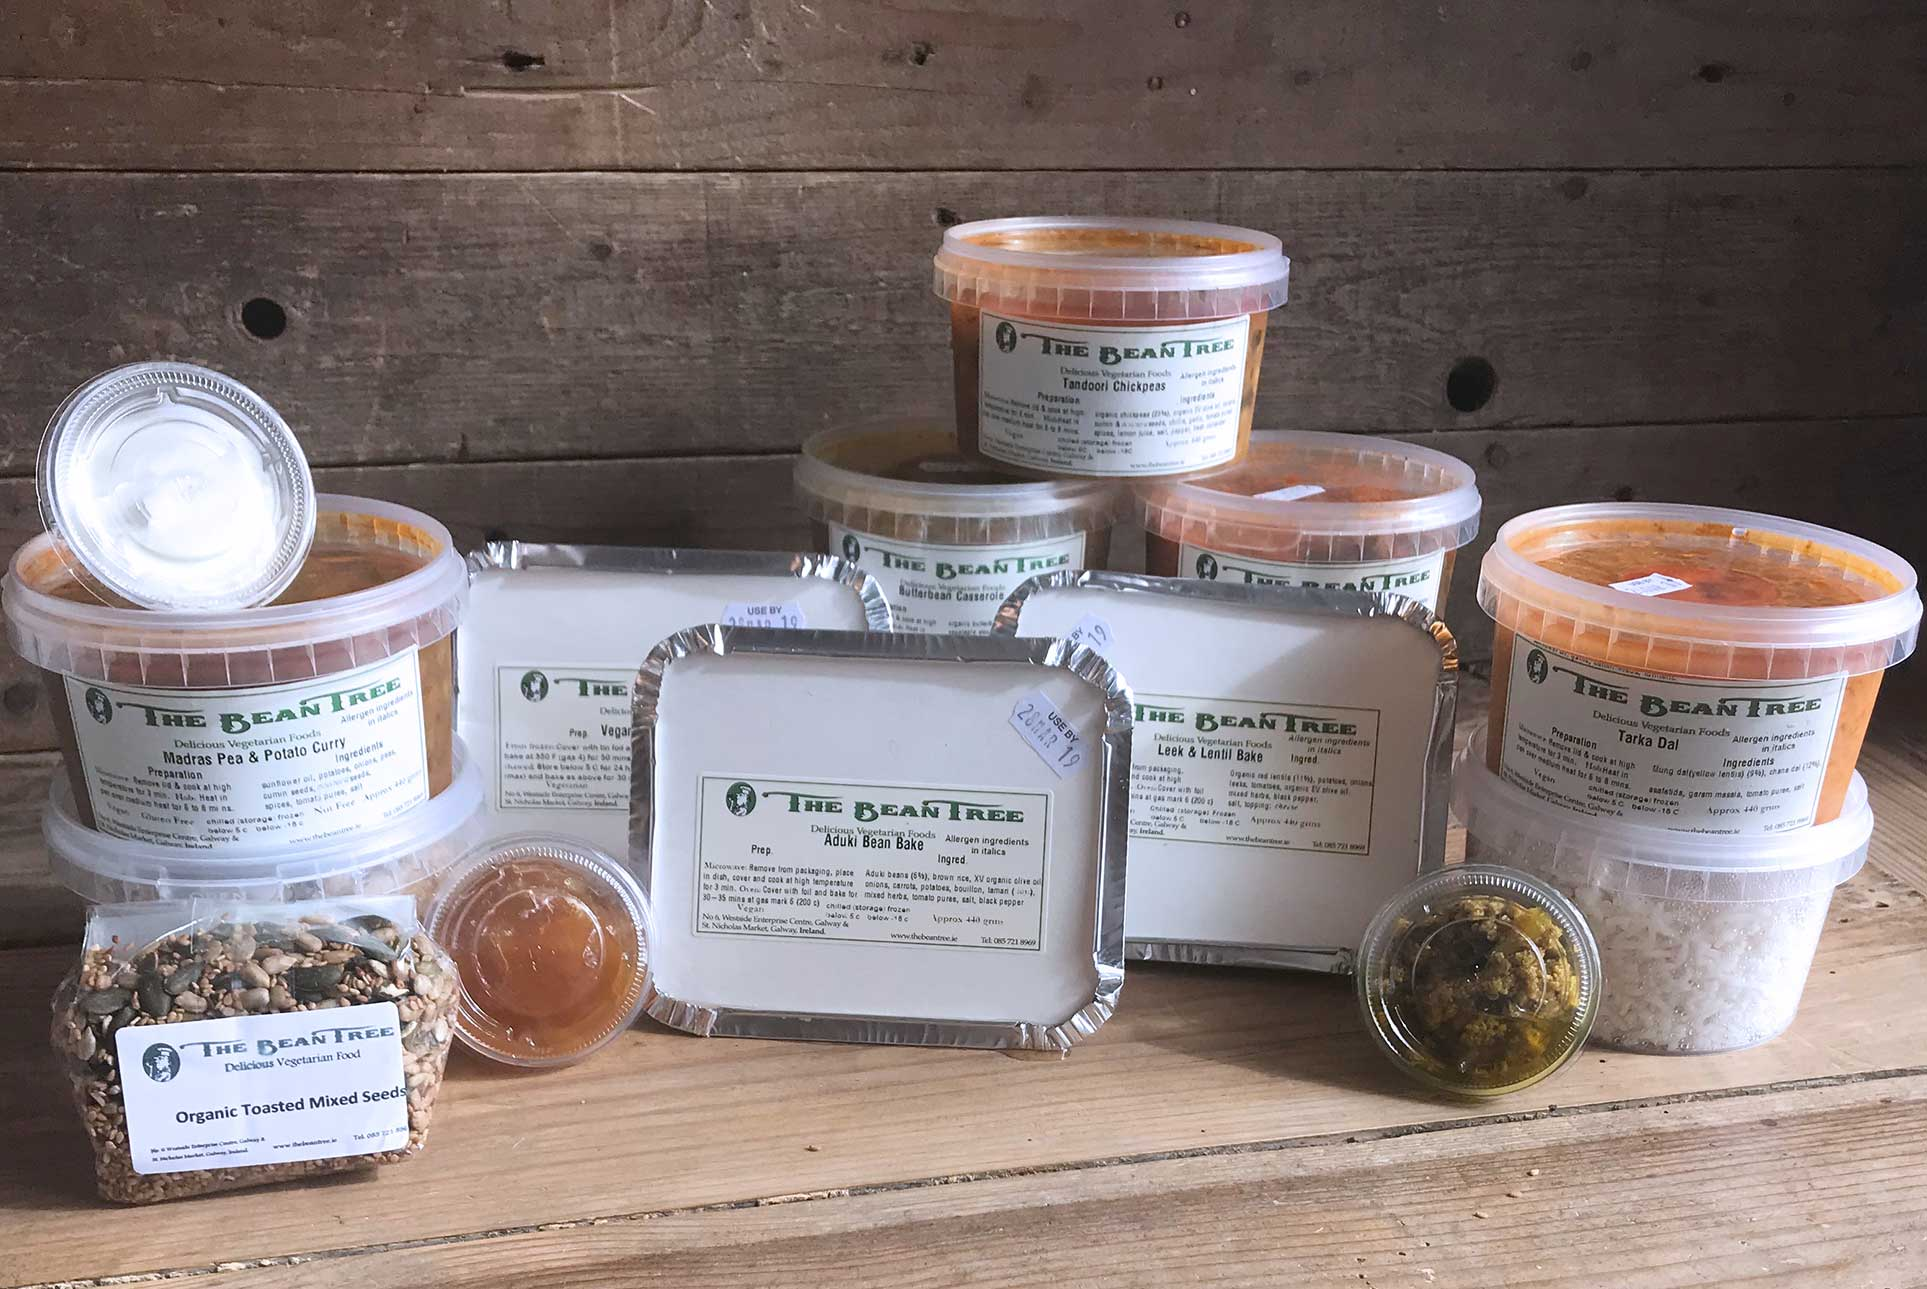 The Bean Tree chilled/frozen take home meals